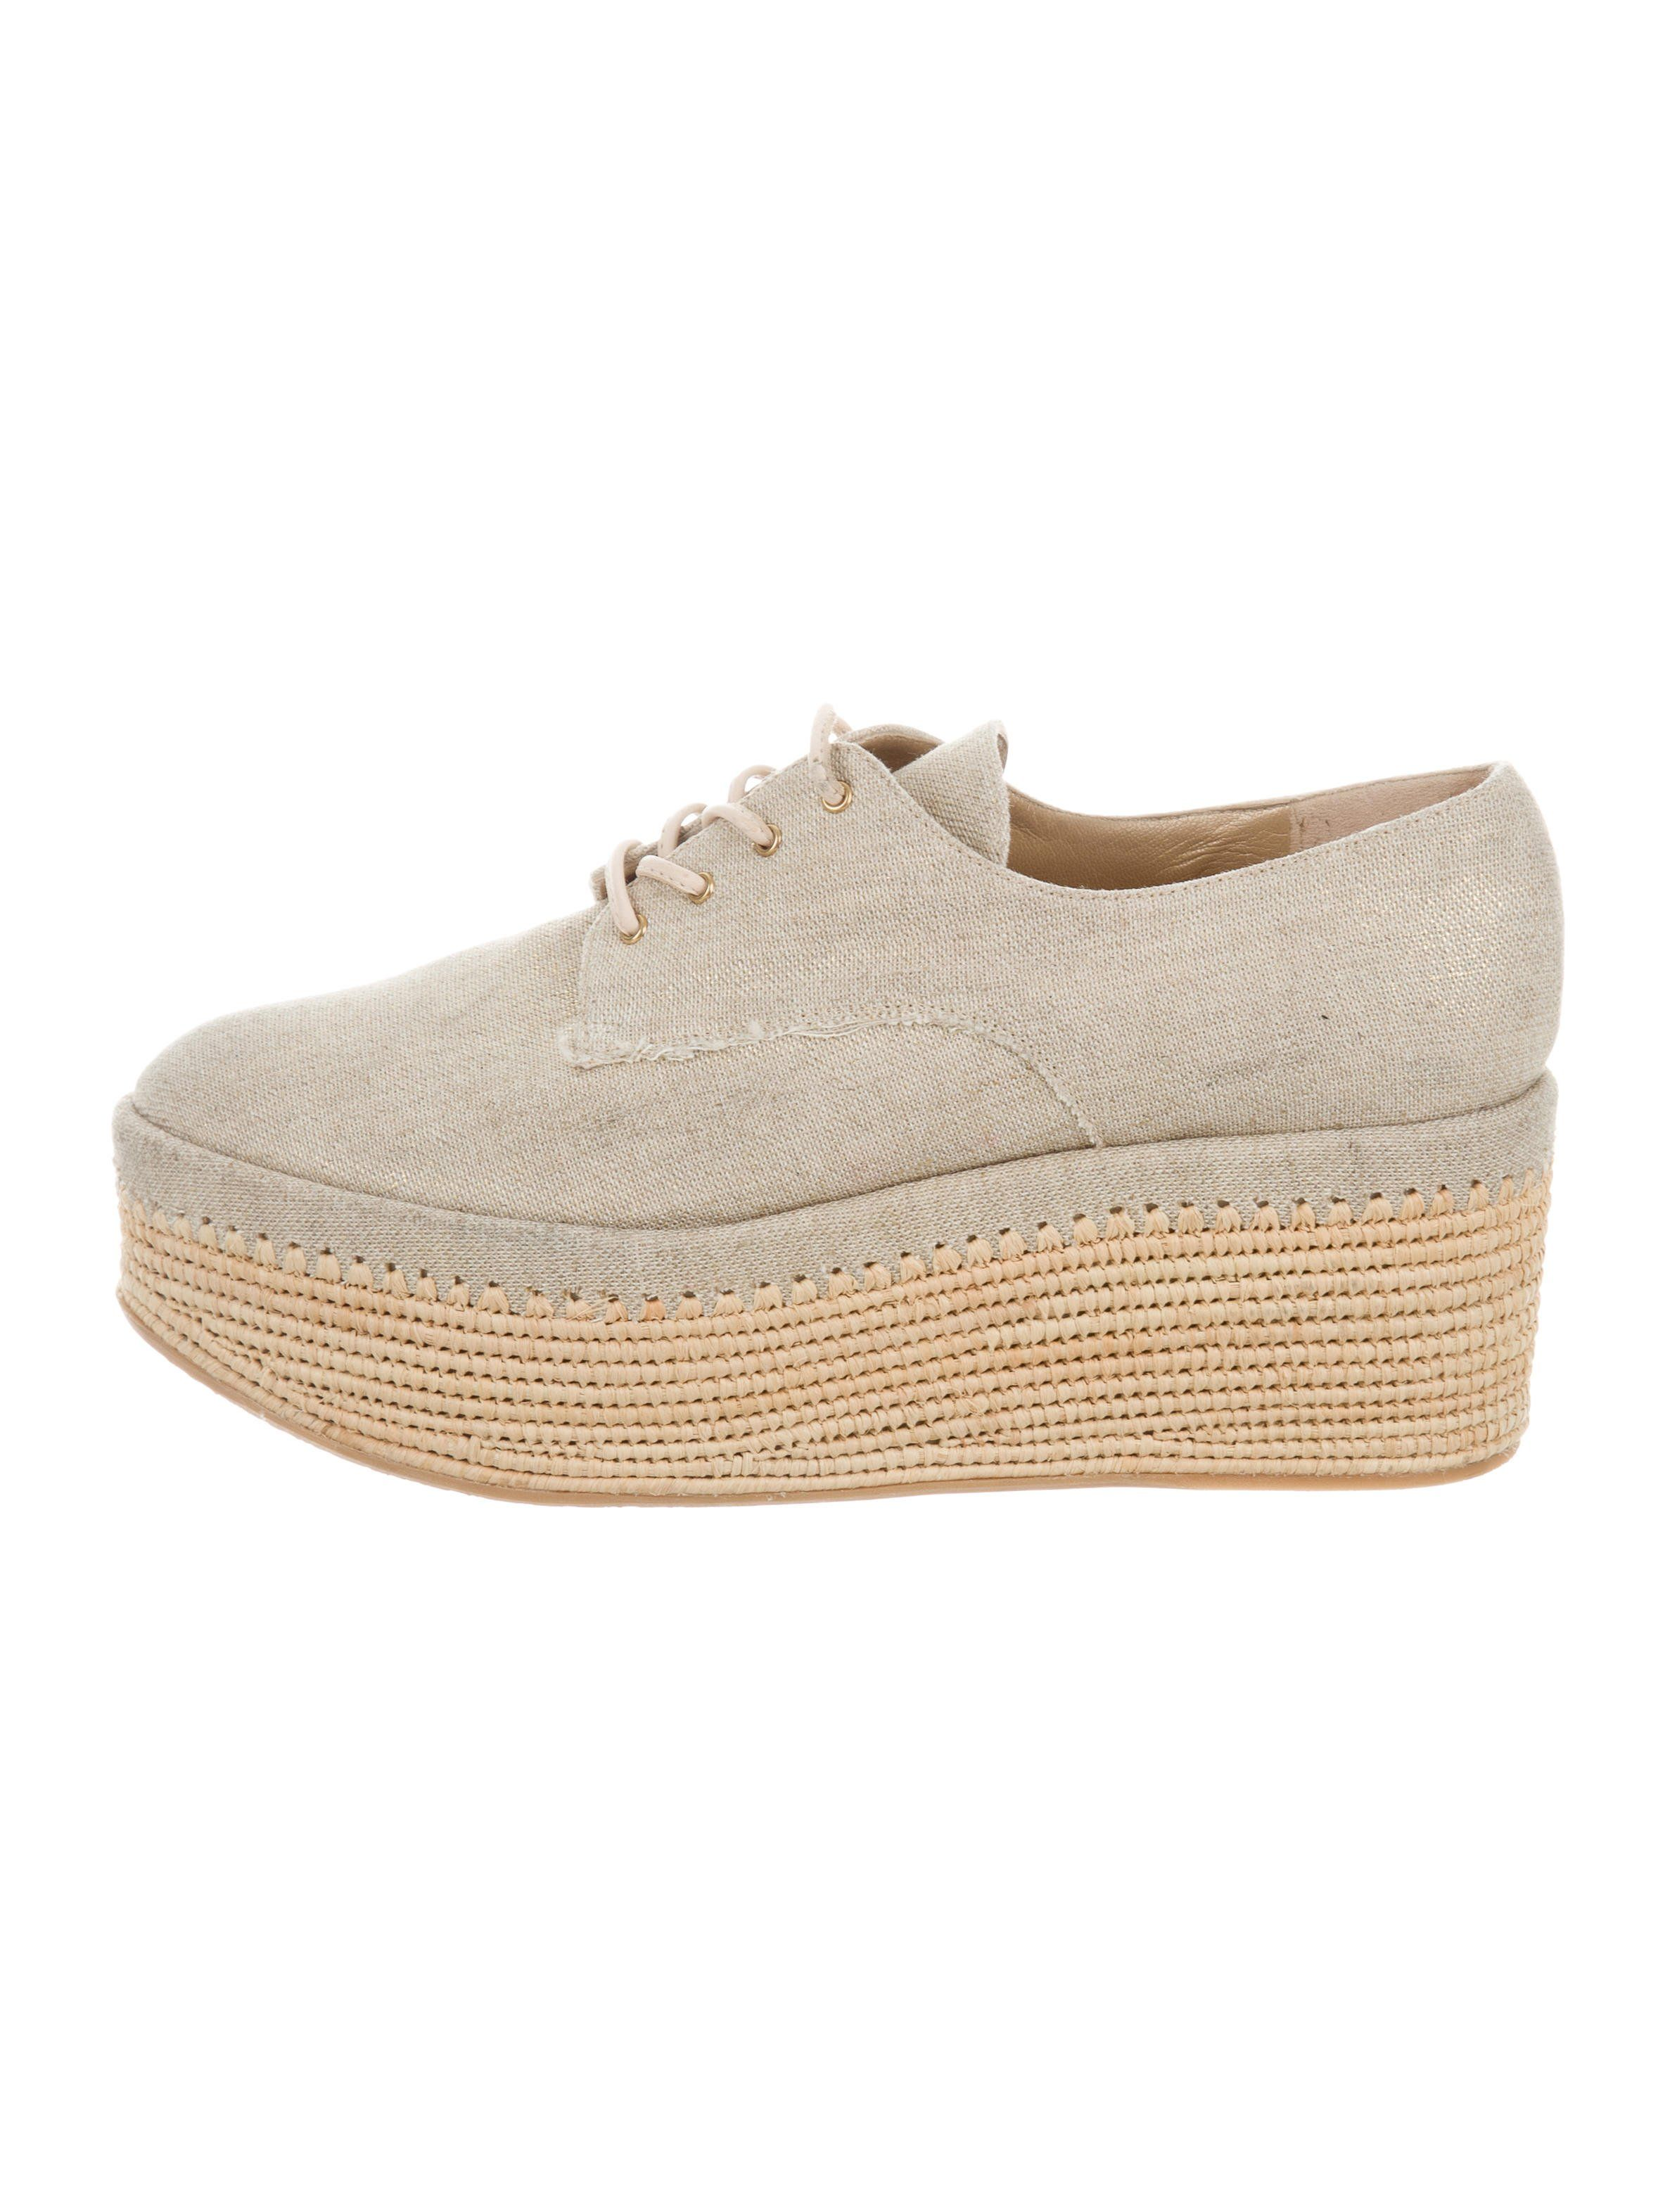 outlet locations free shipping enjoy Stuart Weitzman Canvas Platform Oxfords cheap how much clearance for cheap free shipping sneakernews AymbEhYrdG